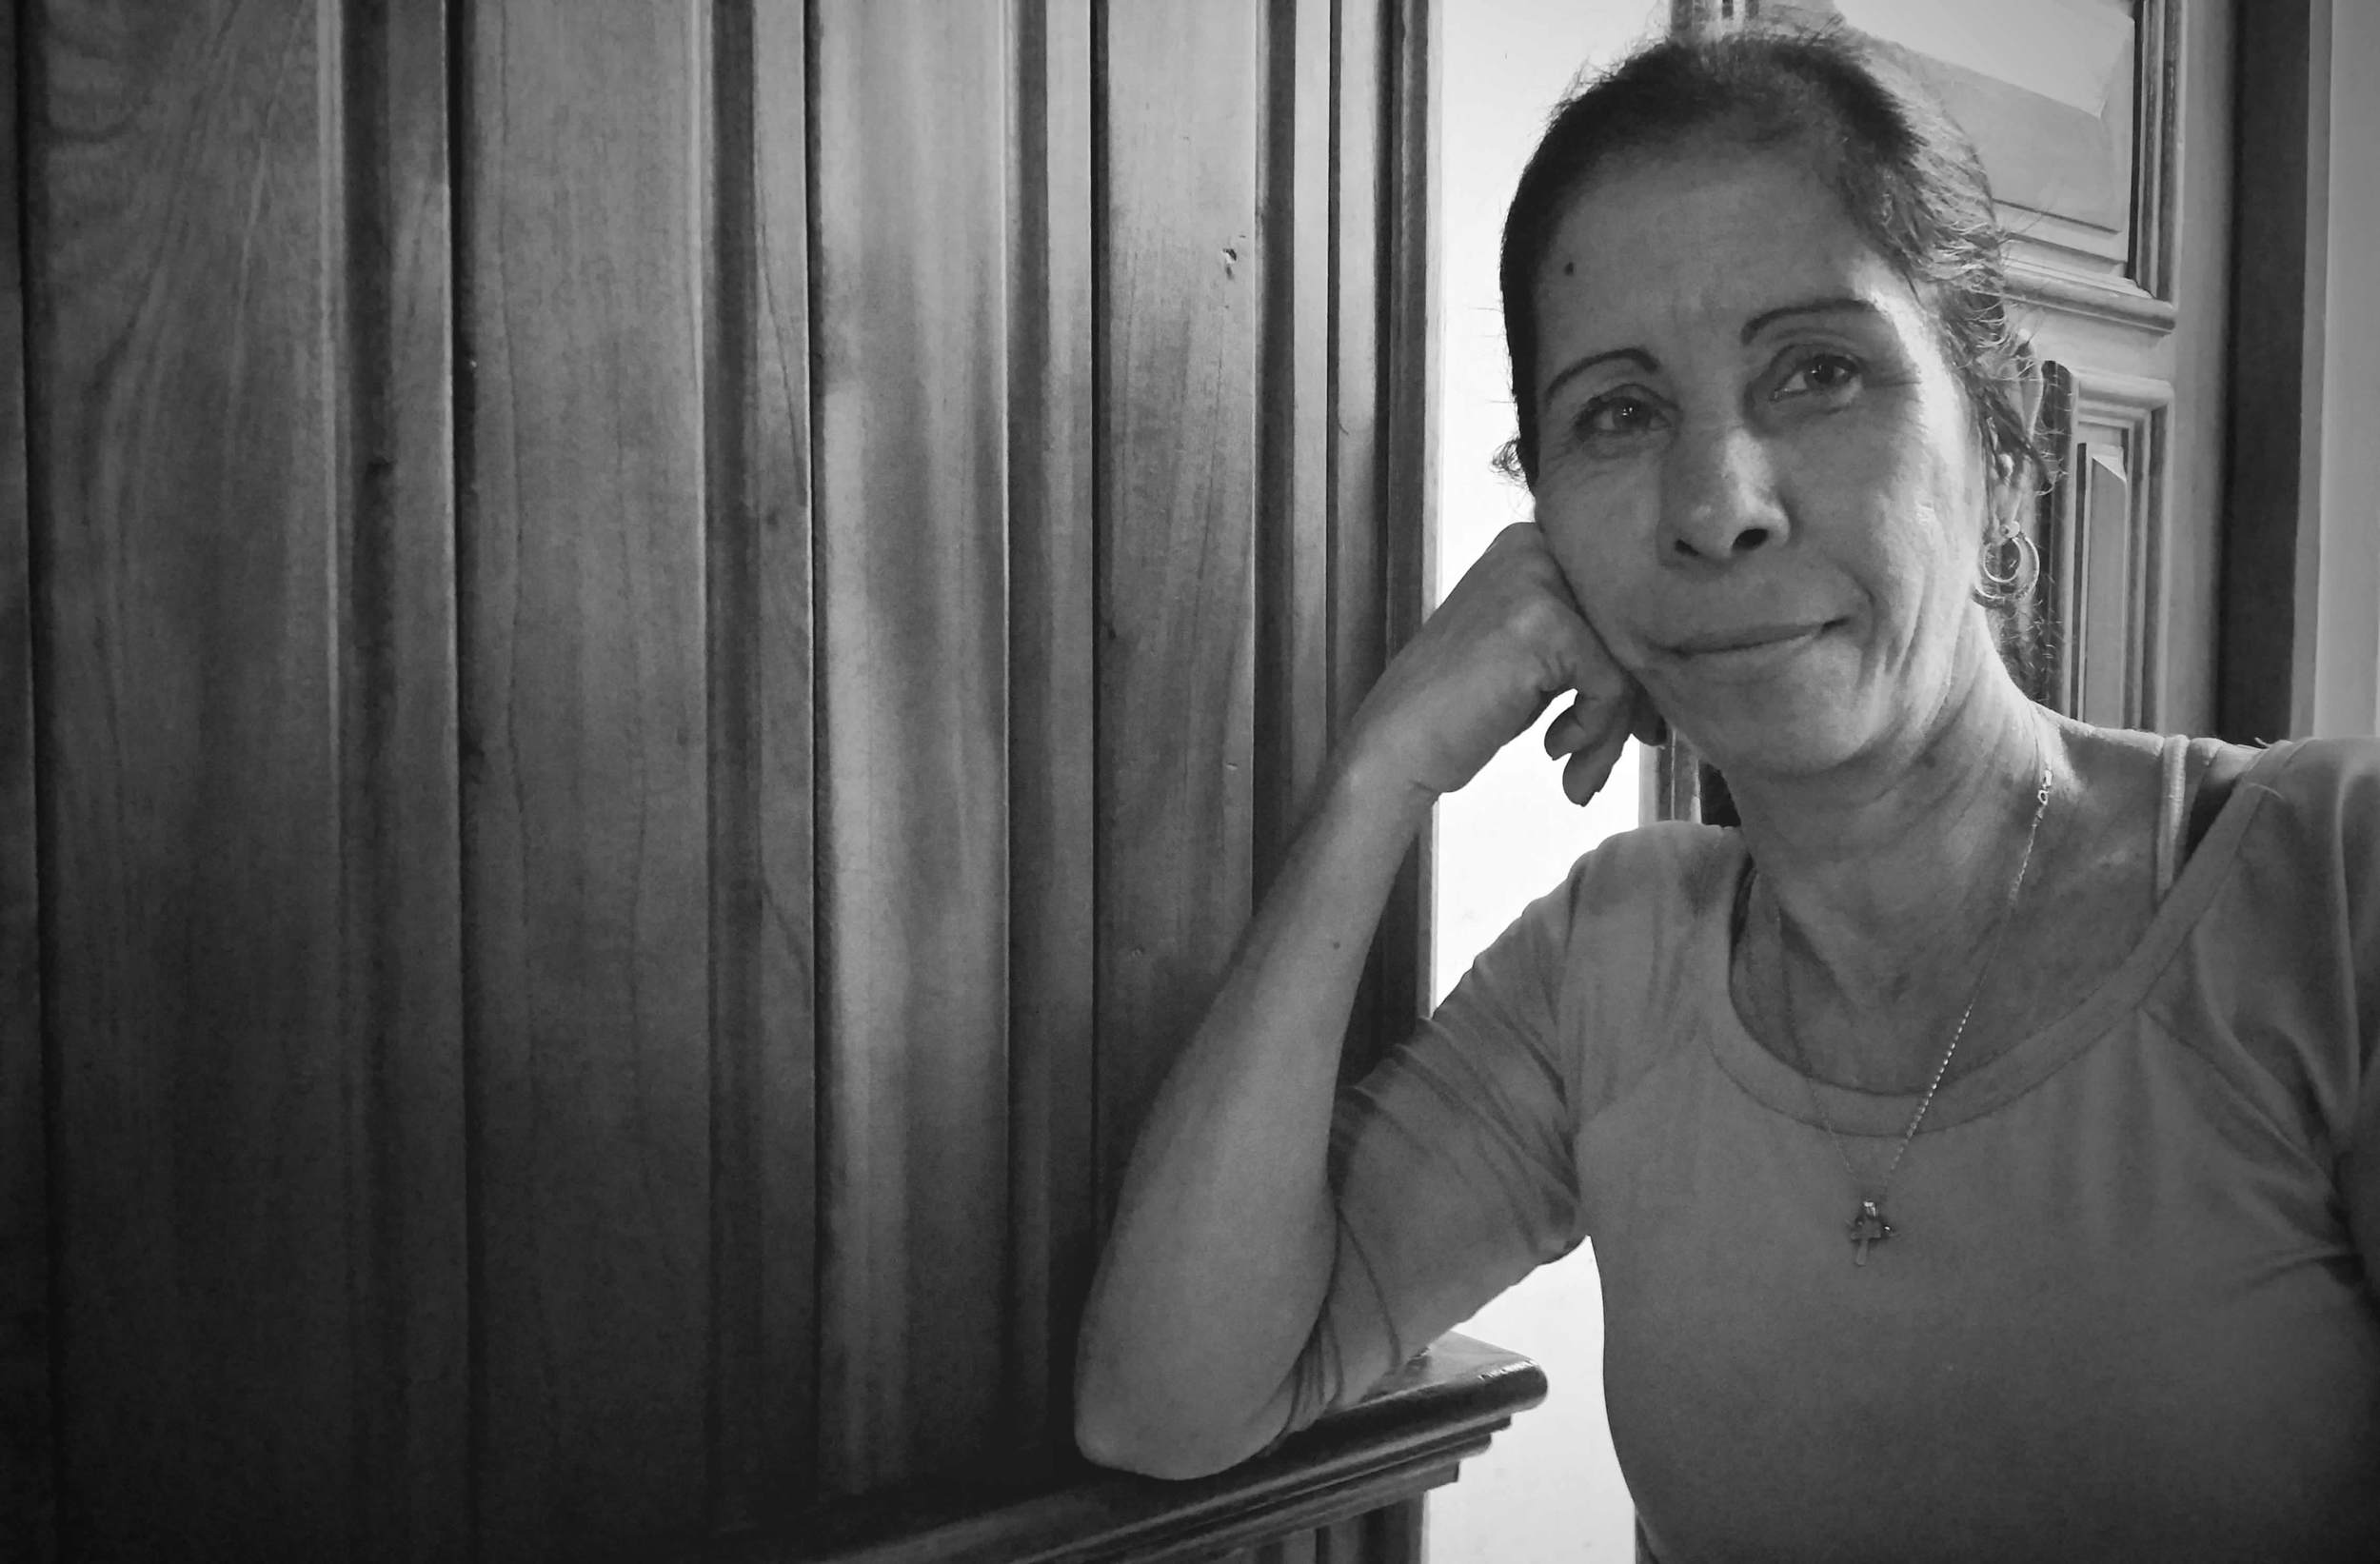 Barbara worked at the cigar factory store in Havana and was supervising bathroom use. While others were in a frenzy buying cigars and rum, I was having a conversation in broken English and Spanish, which was the first and one of the most touching experiences I've had talking with a stranger in a foreign country. We ended our conversation with an embrace, one I will never forget.